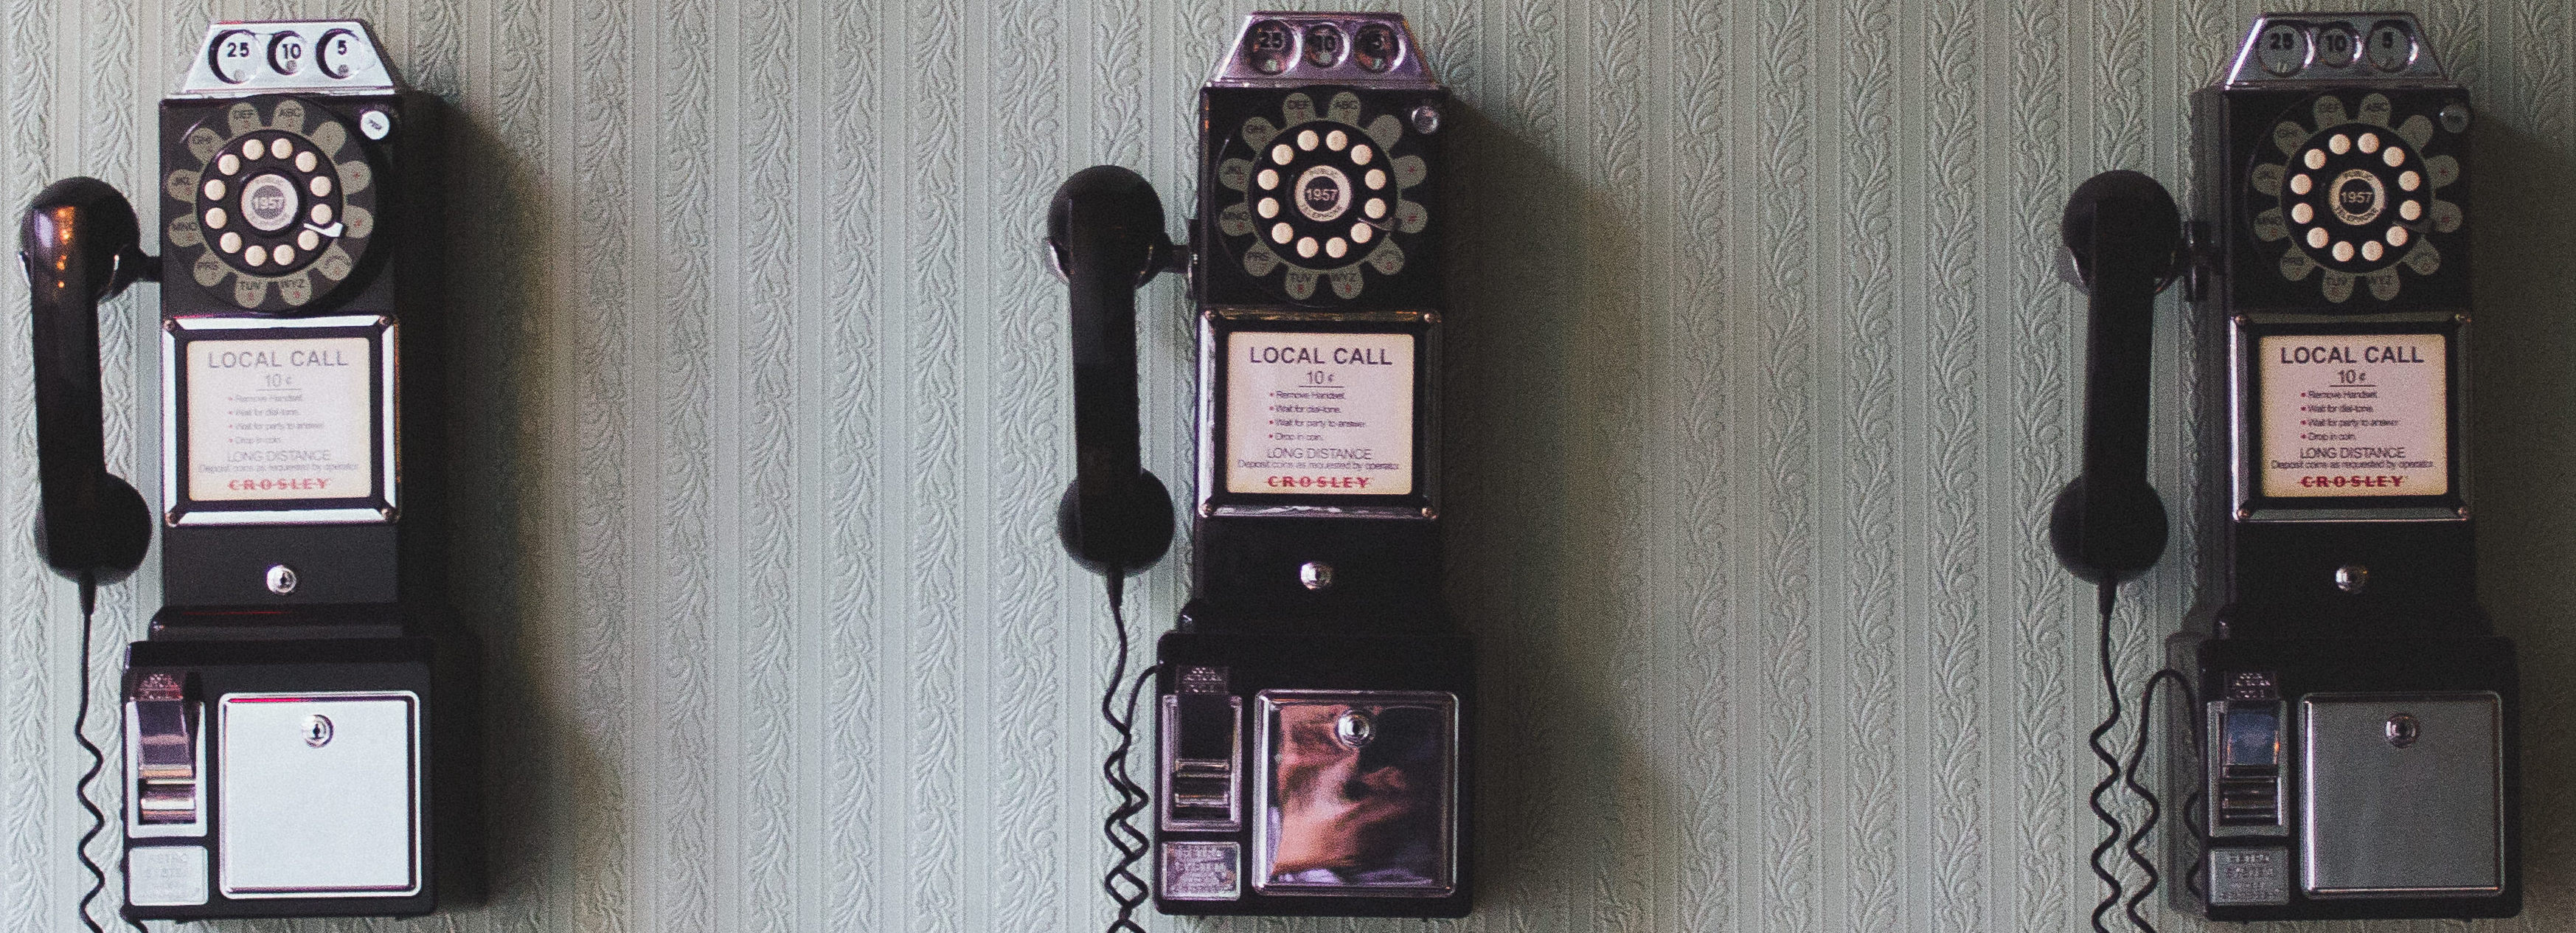 Telephones - Contact Page